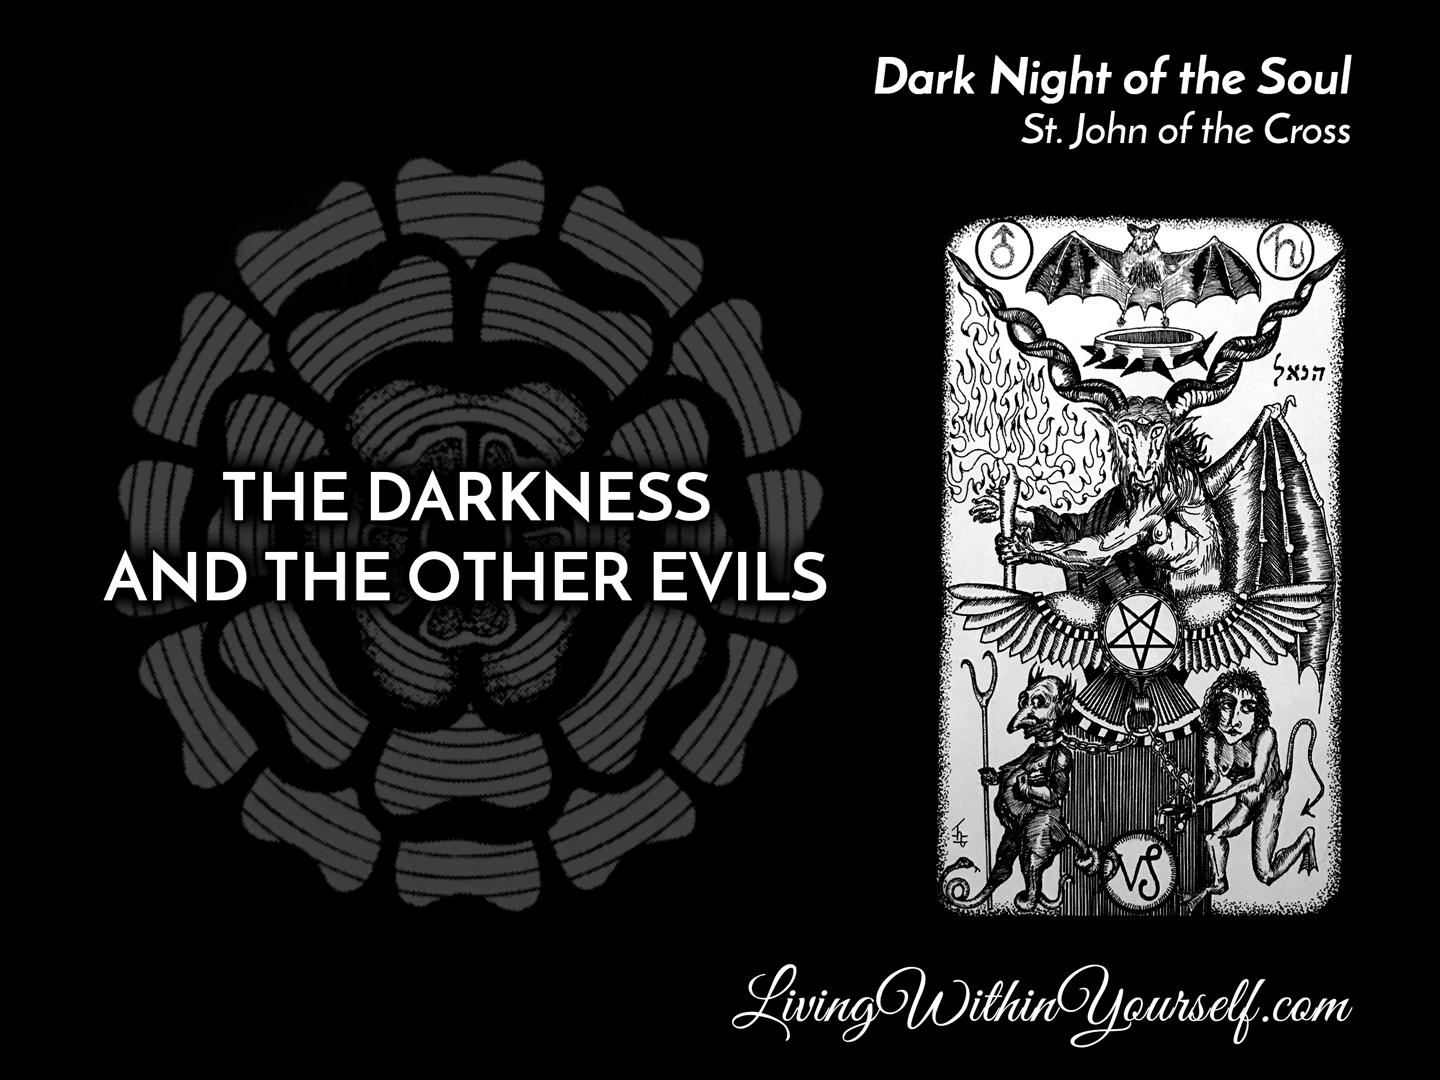 The Dark Night of the Soul - The Darkness and the Other Evils